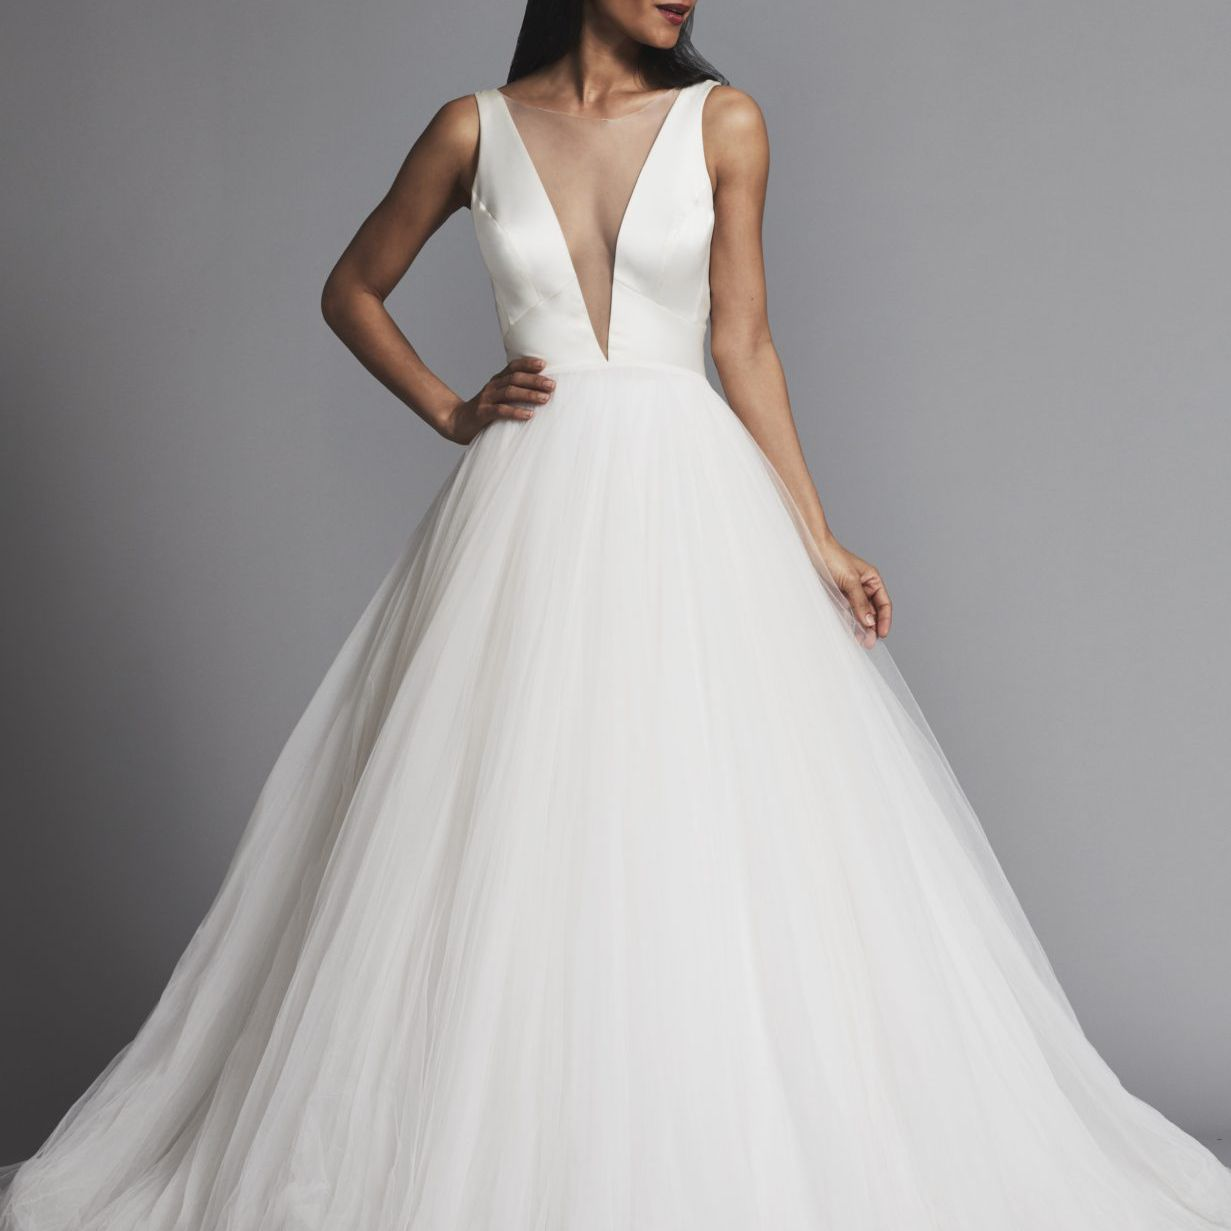 Model in satin and tulle ballgown wedding dress with sheer illusion neckline